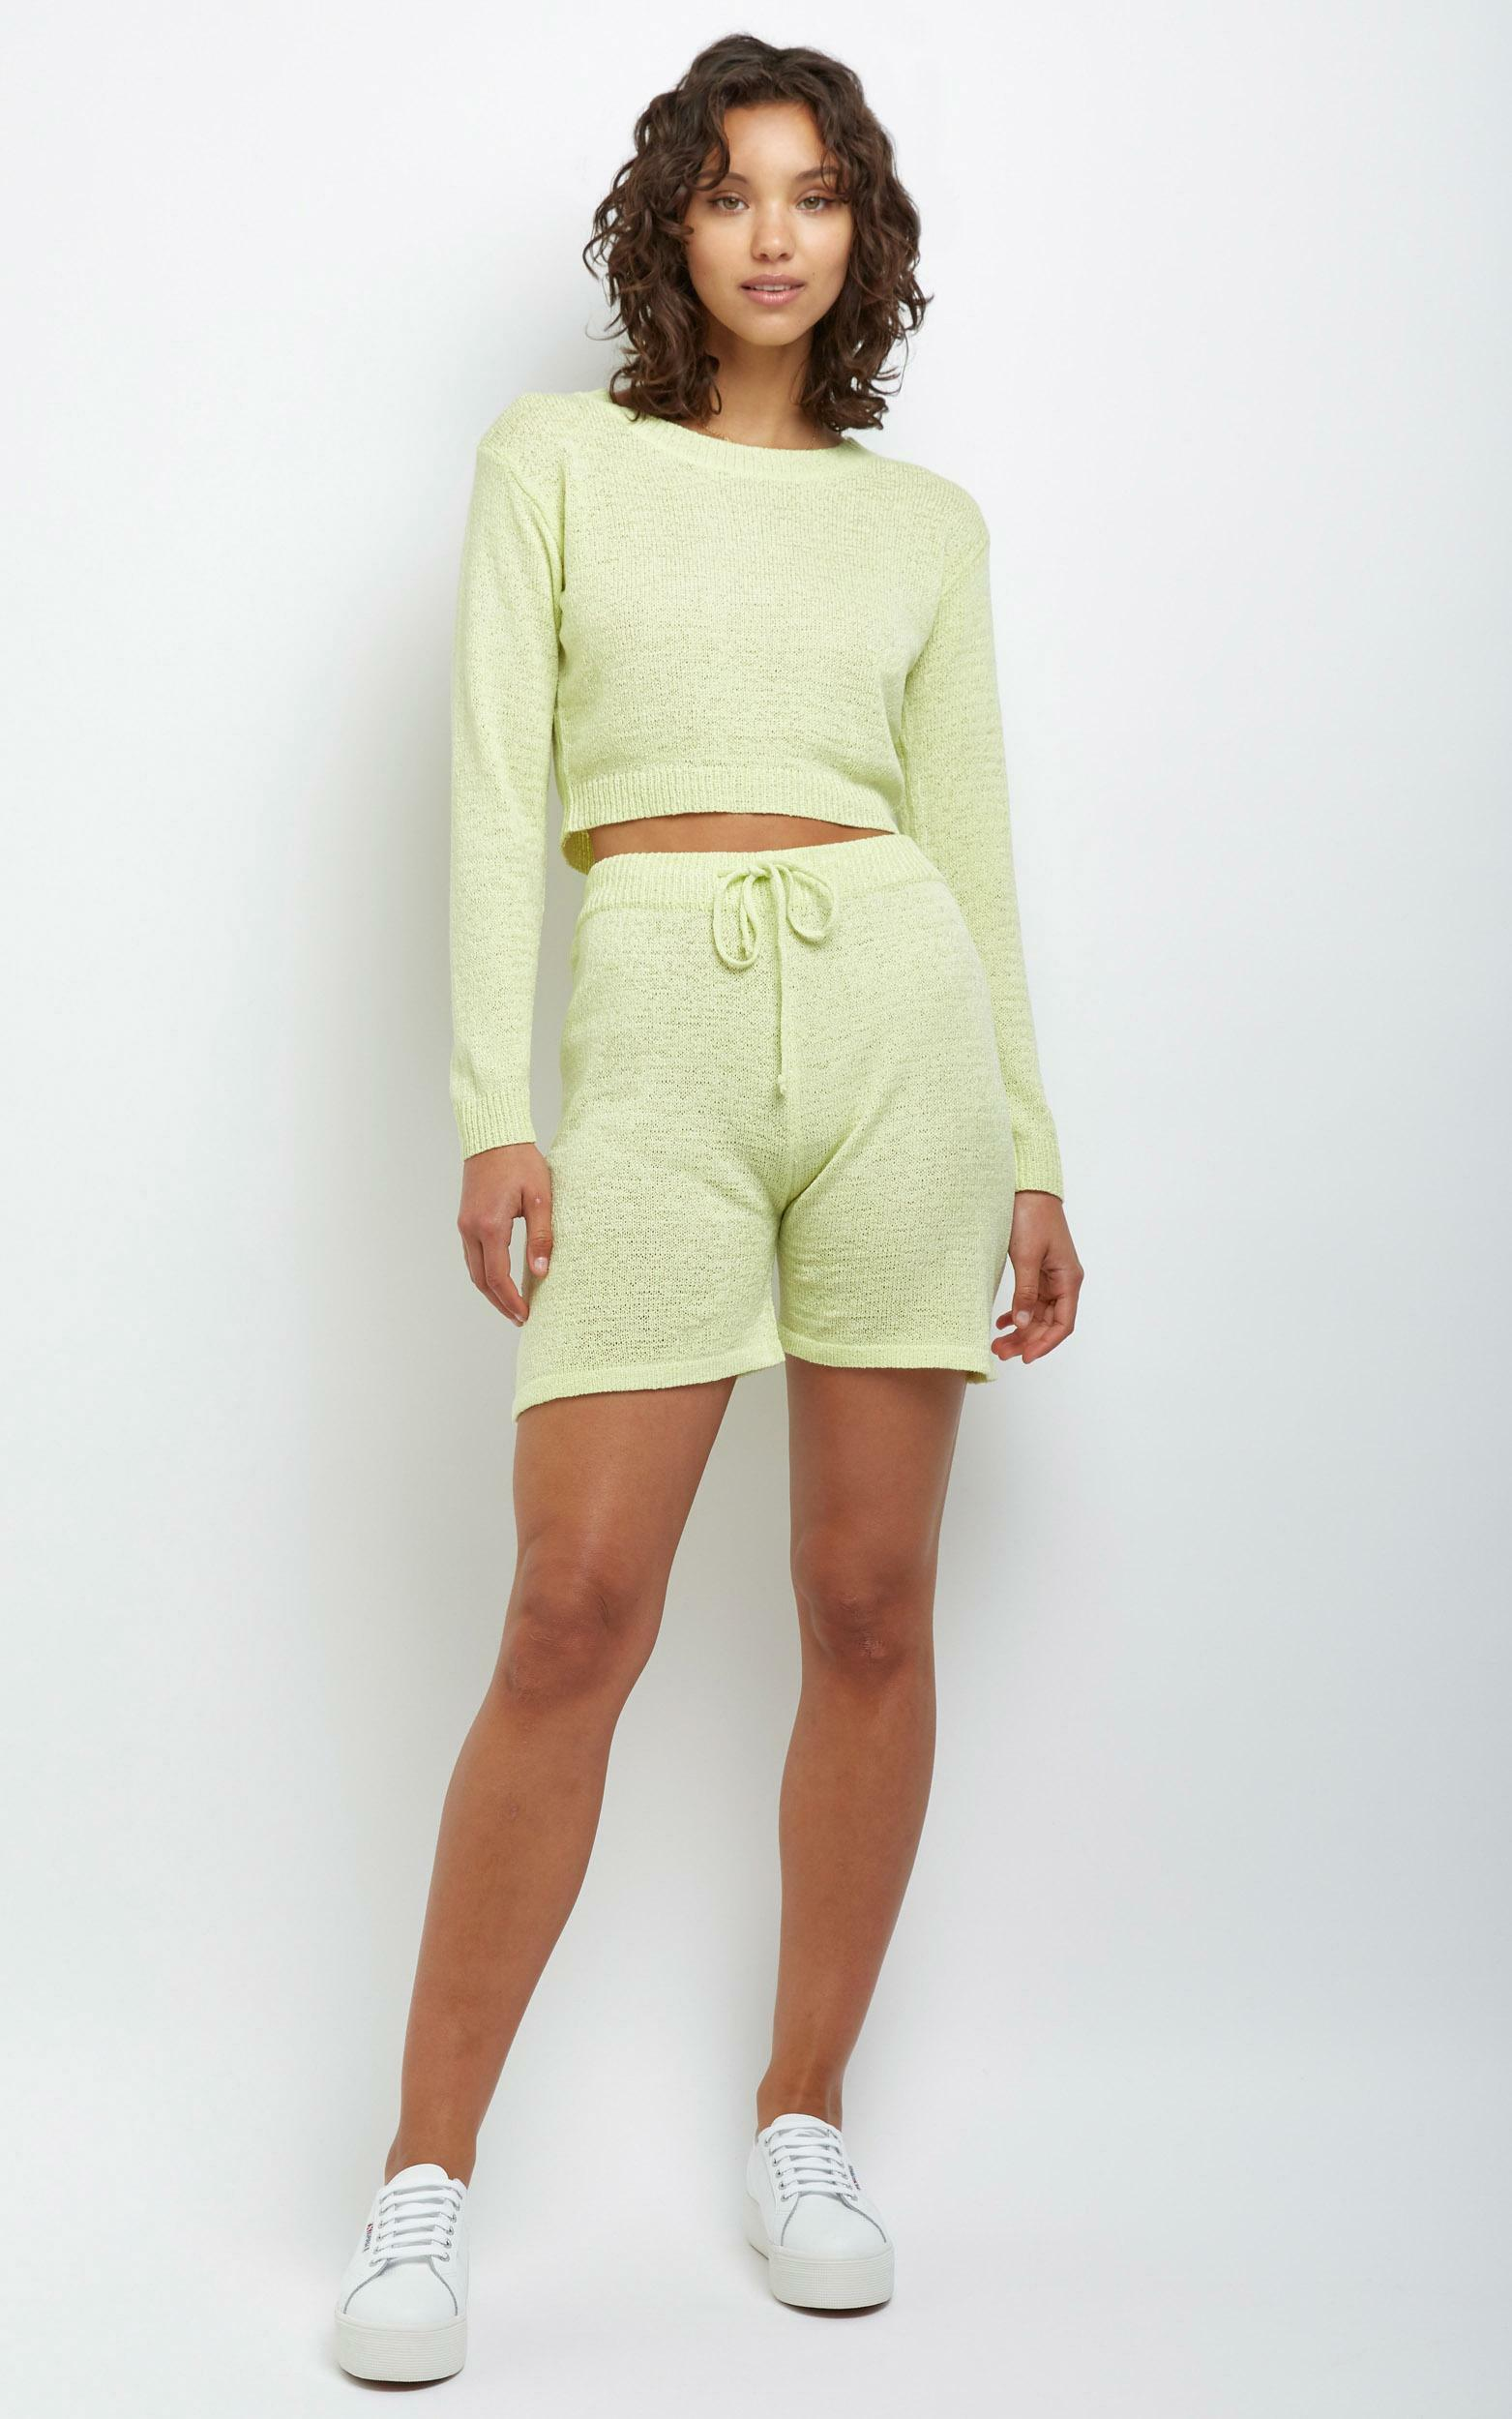 Dacia Knit Shorts in Yellow - L, Yellow, hi-res image number null